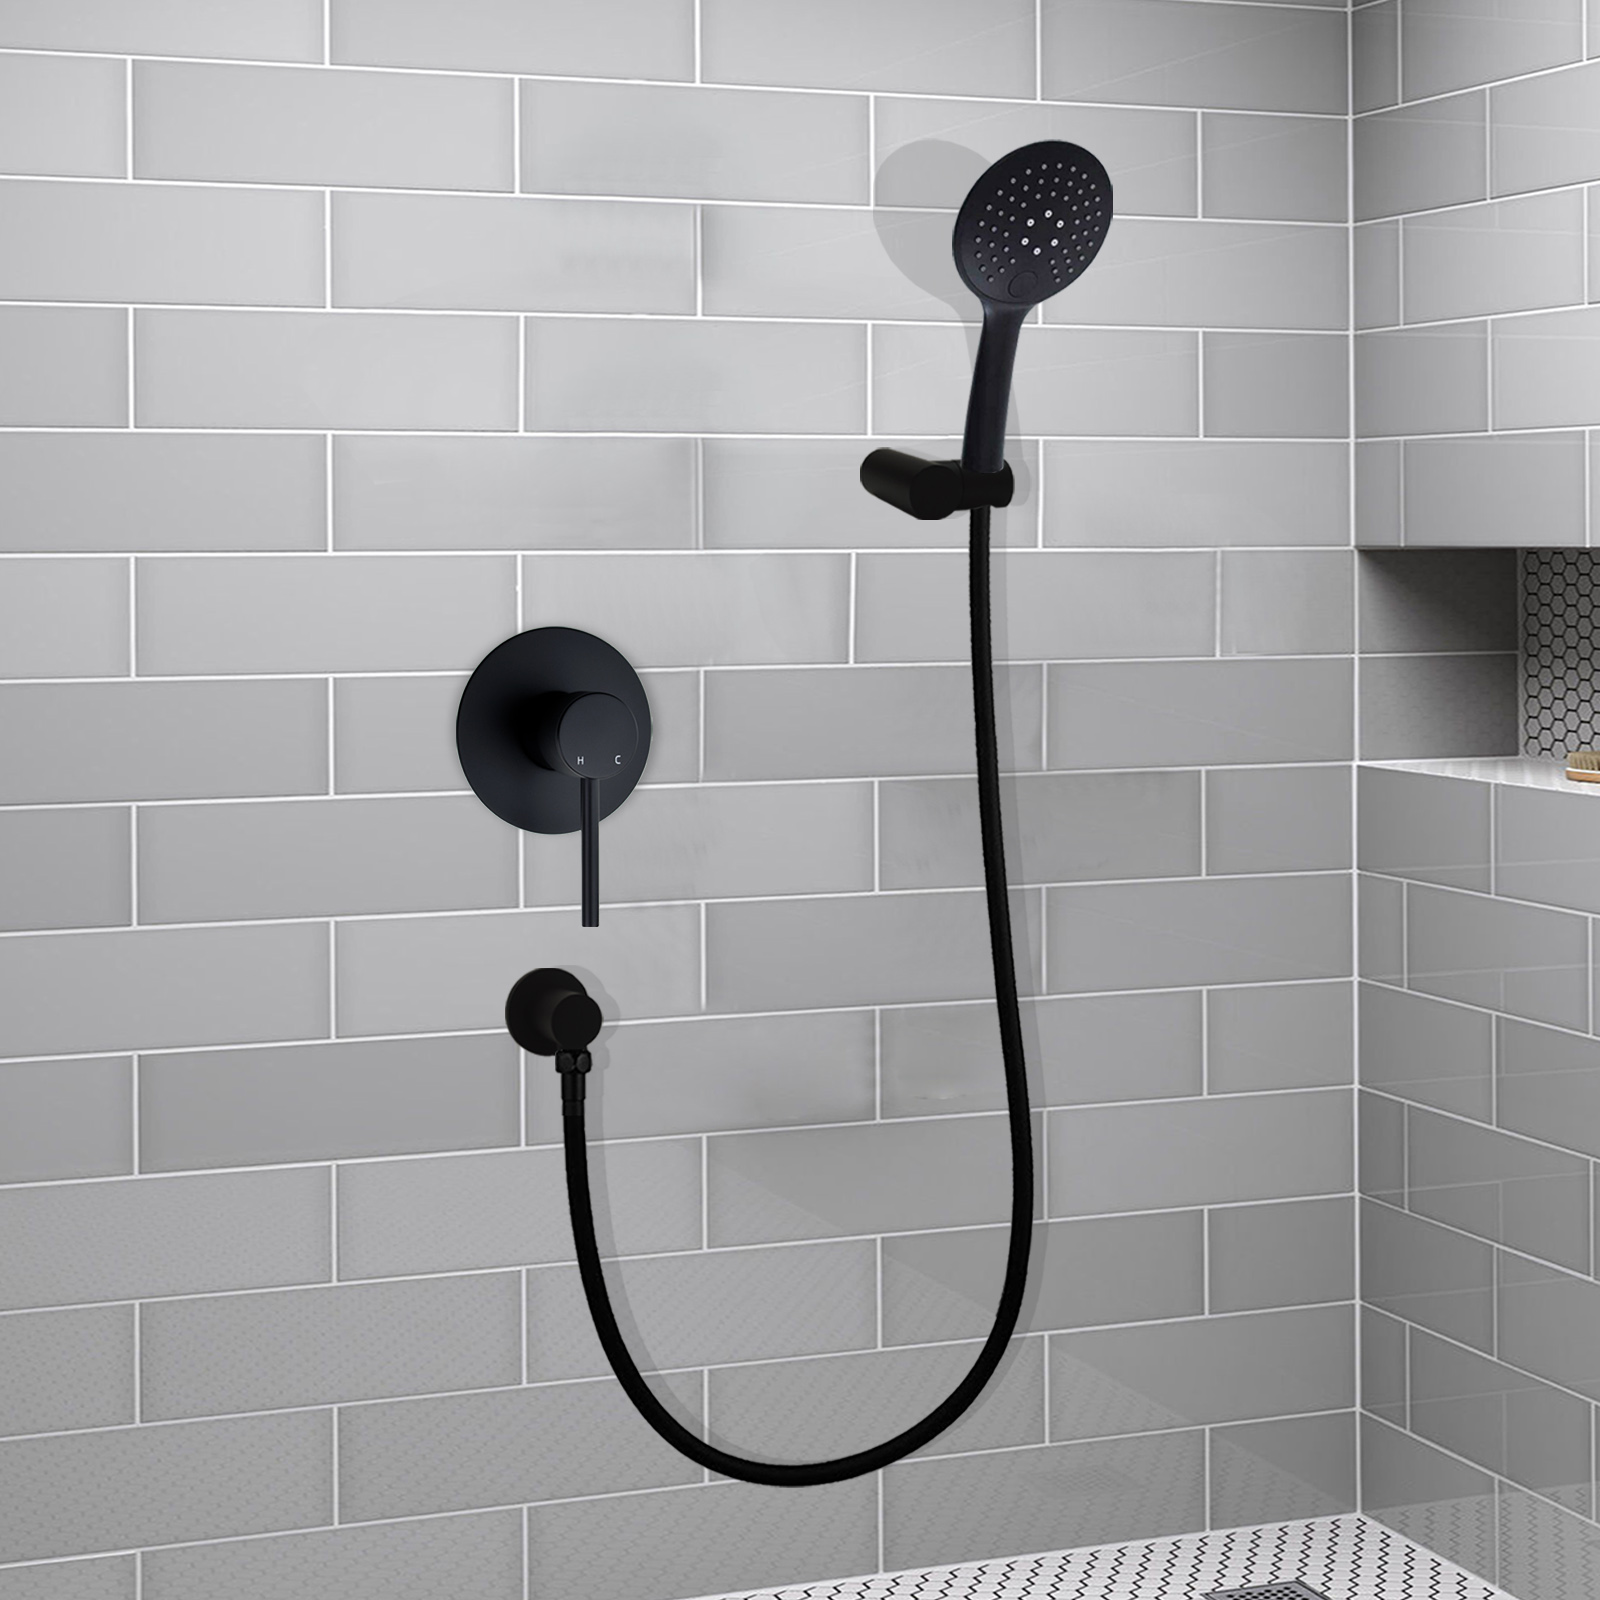 Details About 3 Modes Handheld Shower Head Concealed Mixer Valve Tap Muti Position Matte Black